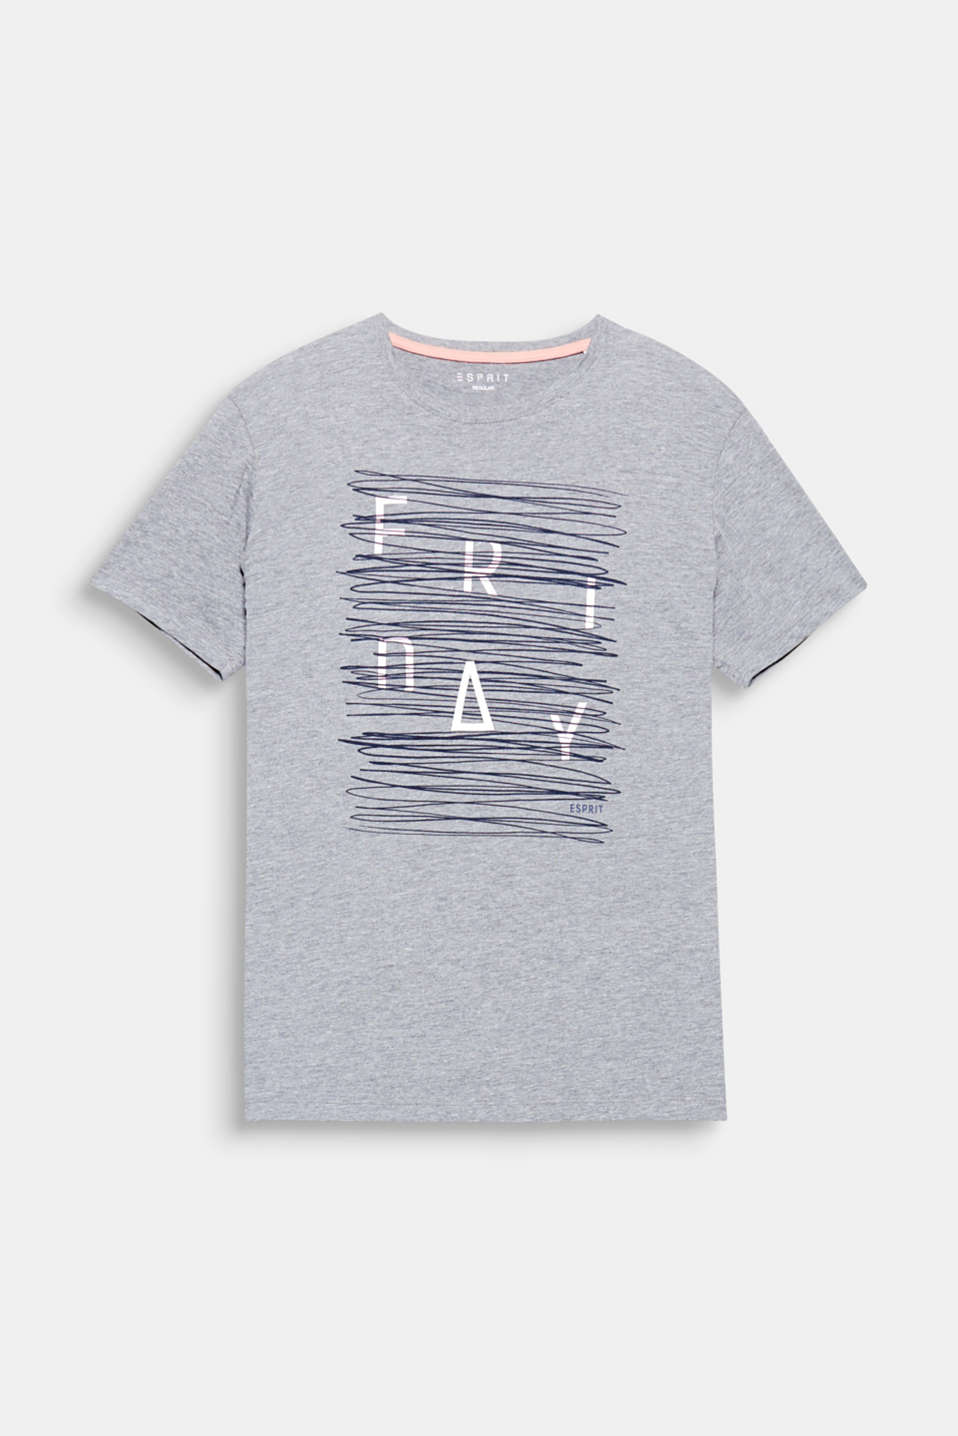 Friday! The stylised printed lettering adds modern style to this T-shirt.